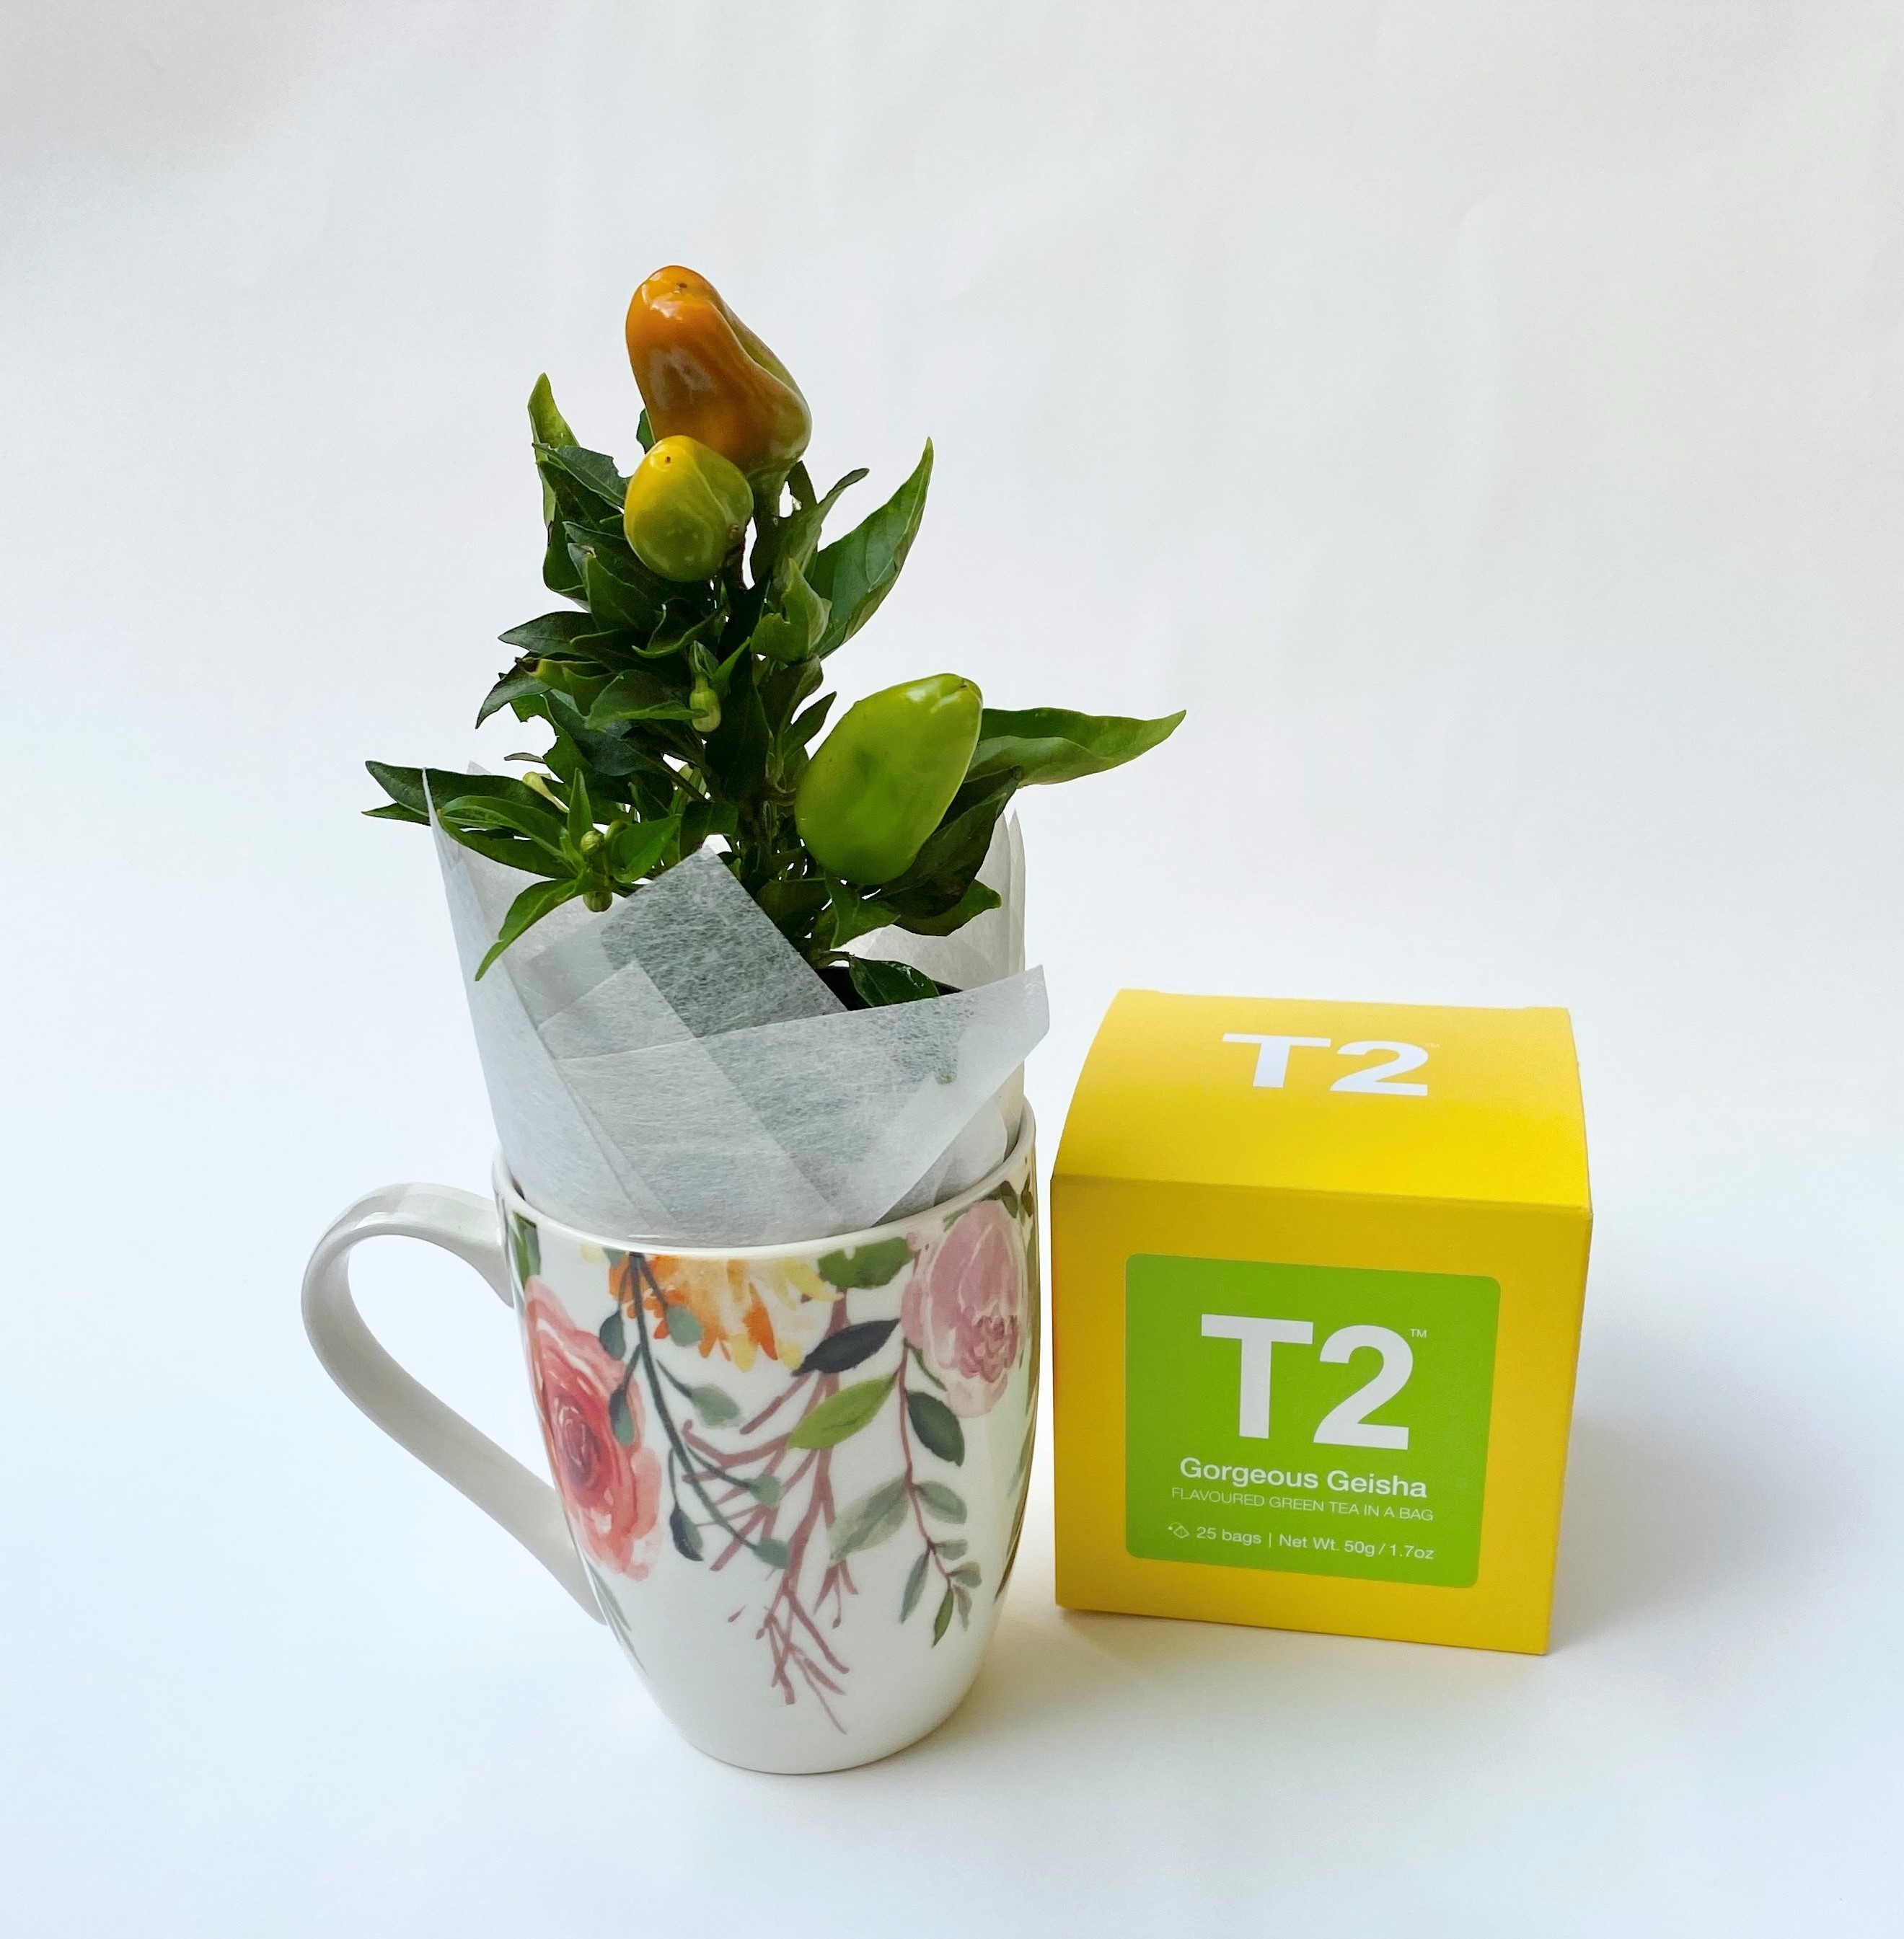 Chill - Chilli Plant, Coffee Mug and T2 Gift